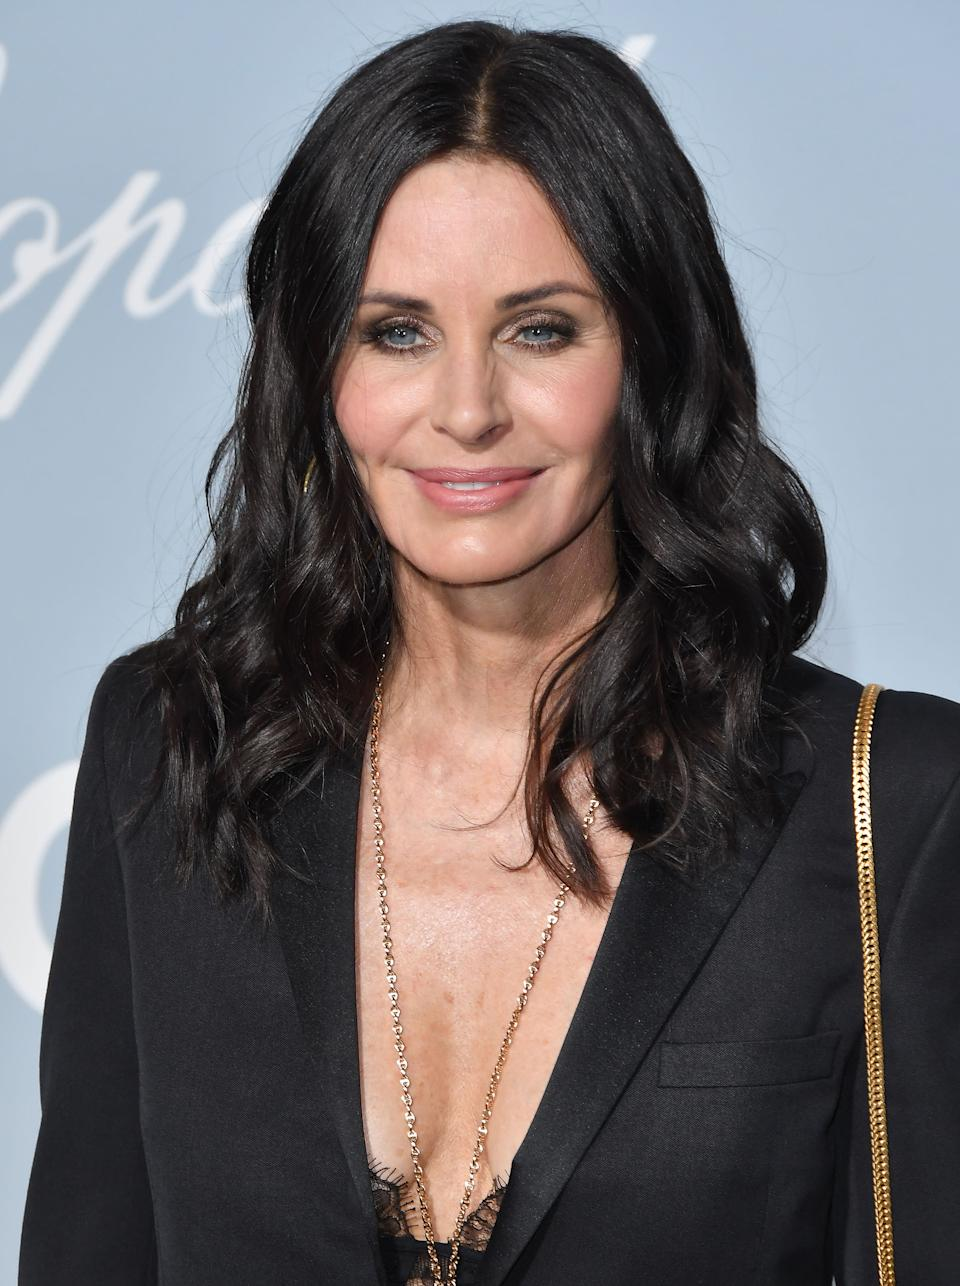 Courteney Cox arrives at the UCLA IoES 2019 Hollywood For Science Gala held at the Private Estate of Jeanne & Tony Pritzker in Los Angeles, CA on Thursday, February 21, 2019. (Photo By Sthanlee B. Mirador/Sipa USA)